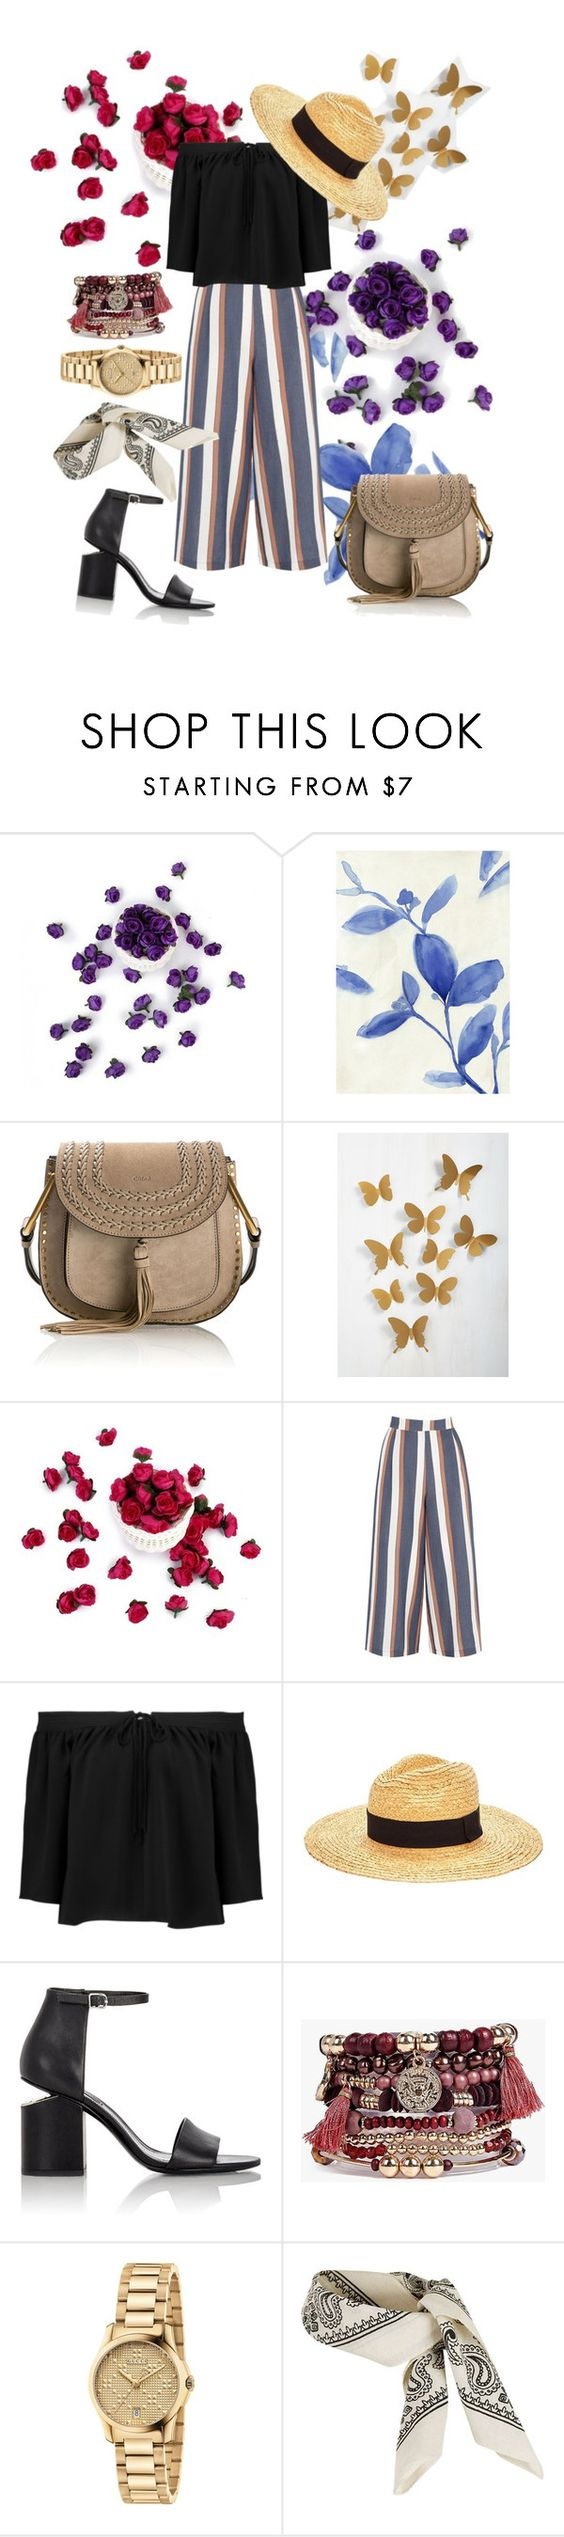 """Natural"" by souljuicex1201 ❤ liked on Polyvore featuring Barclay Butera, Chloé, Warehouse, Elizabeth and James, Glamorous, Alexander Wang, Boohoo, Gucci and Topshop"